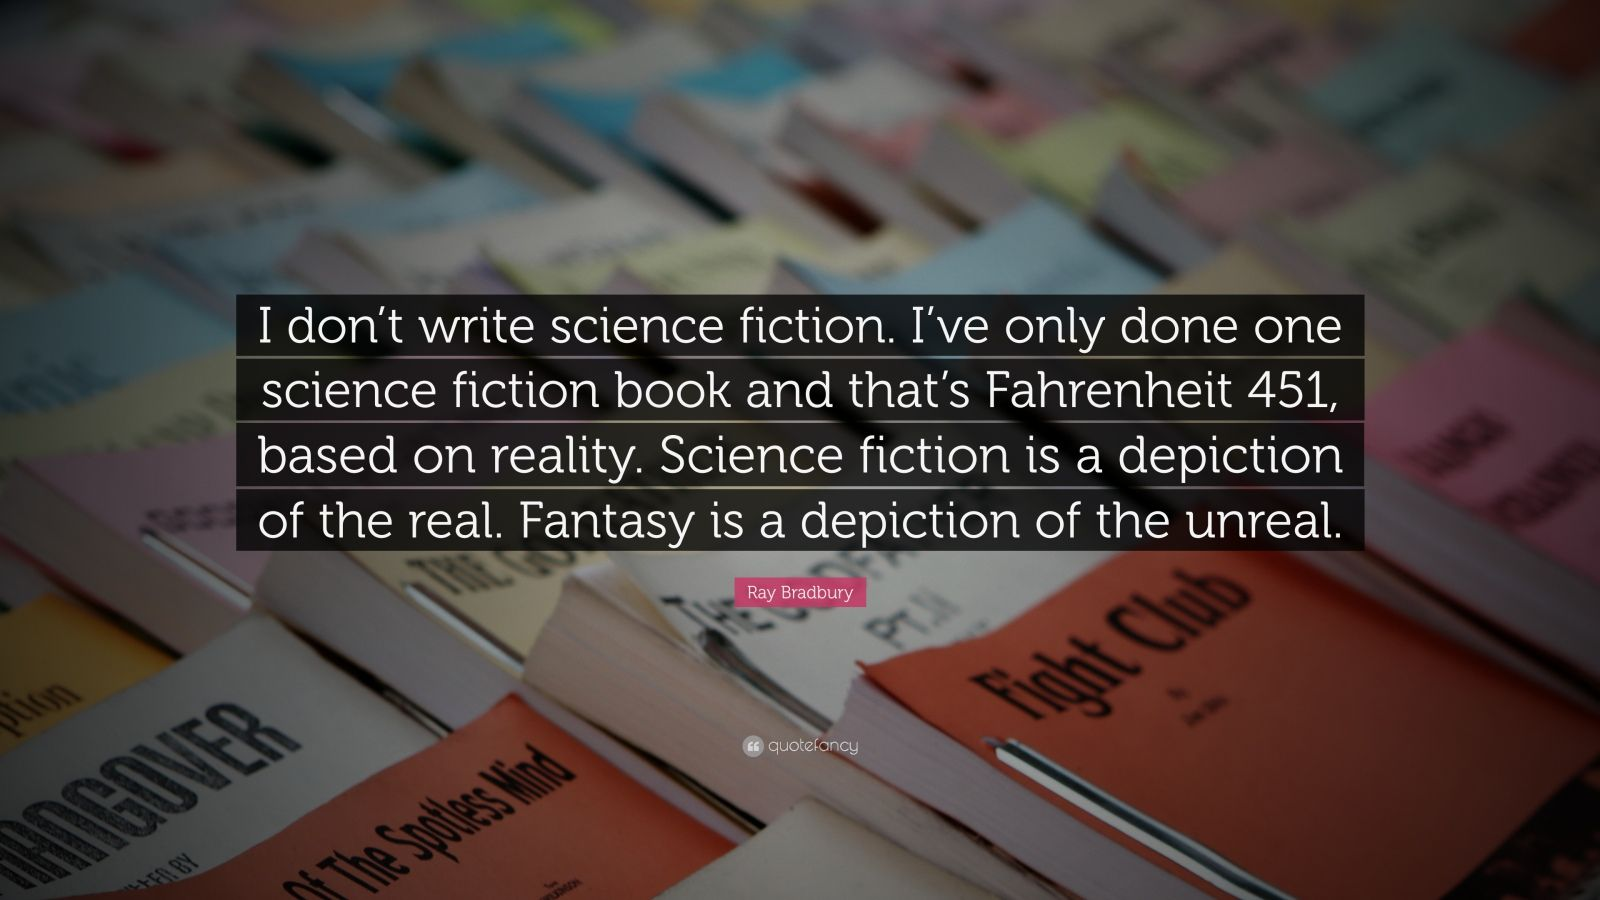 fahrenheit 451 and science fiction The purpose of this site is to examine the film fahrenheit 451, its themes, characters, and importance in science fiction.